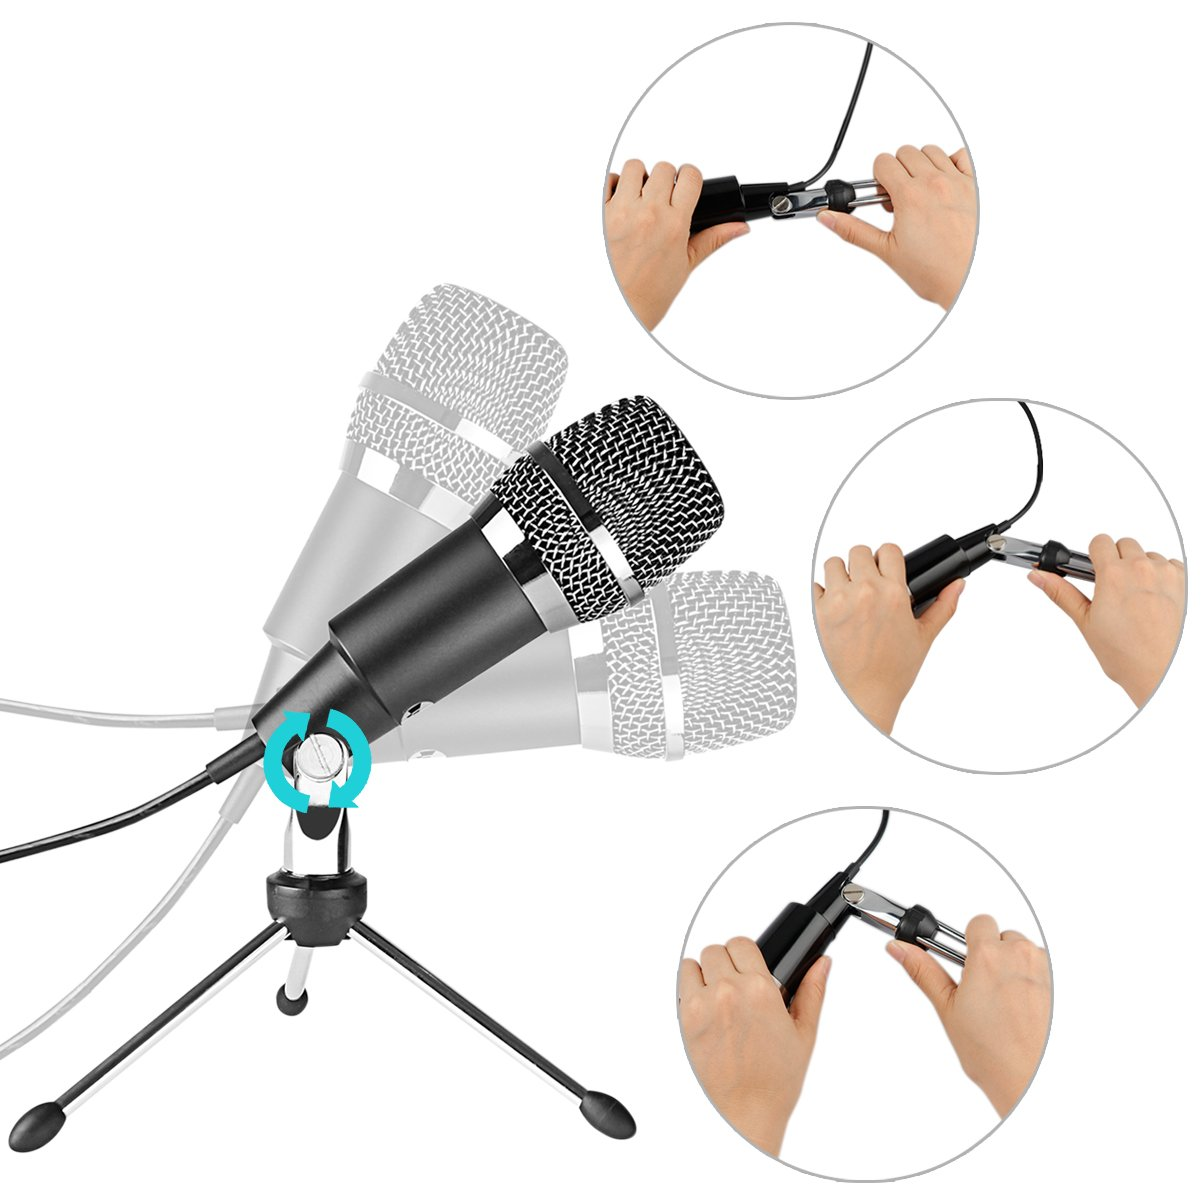 FIFINE TECHNOLOGY USB Microphone,Fifine Plug &Play Home Studio USB Condenser Microphone for Skype, Recordings for YouTube, Google Voice Search, Games(Windows/Mac)-K668 by FIFINE TECHNOLOGY (Image #8)